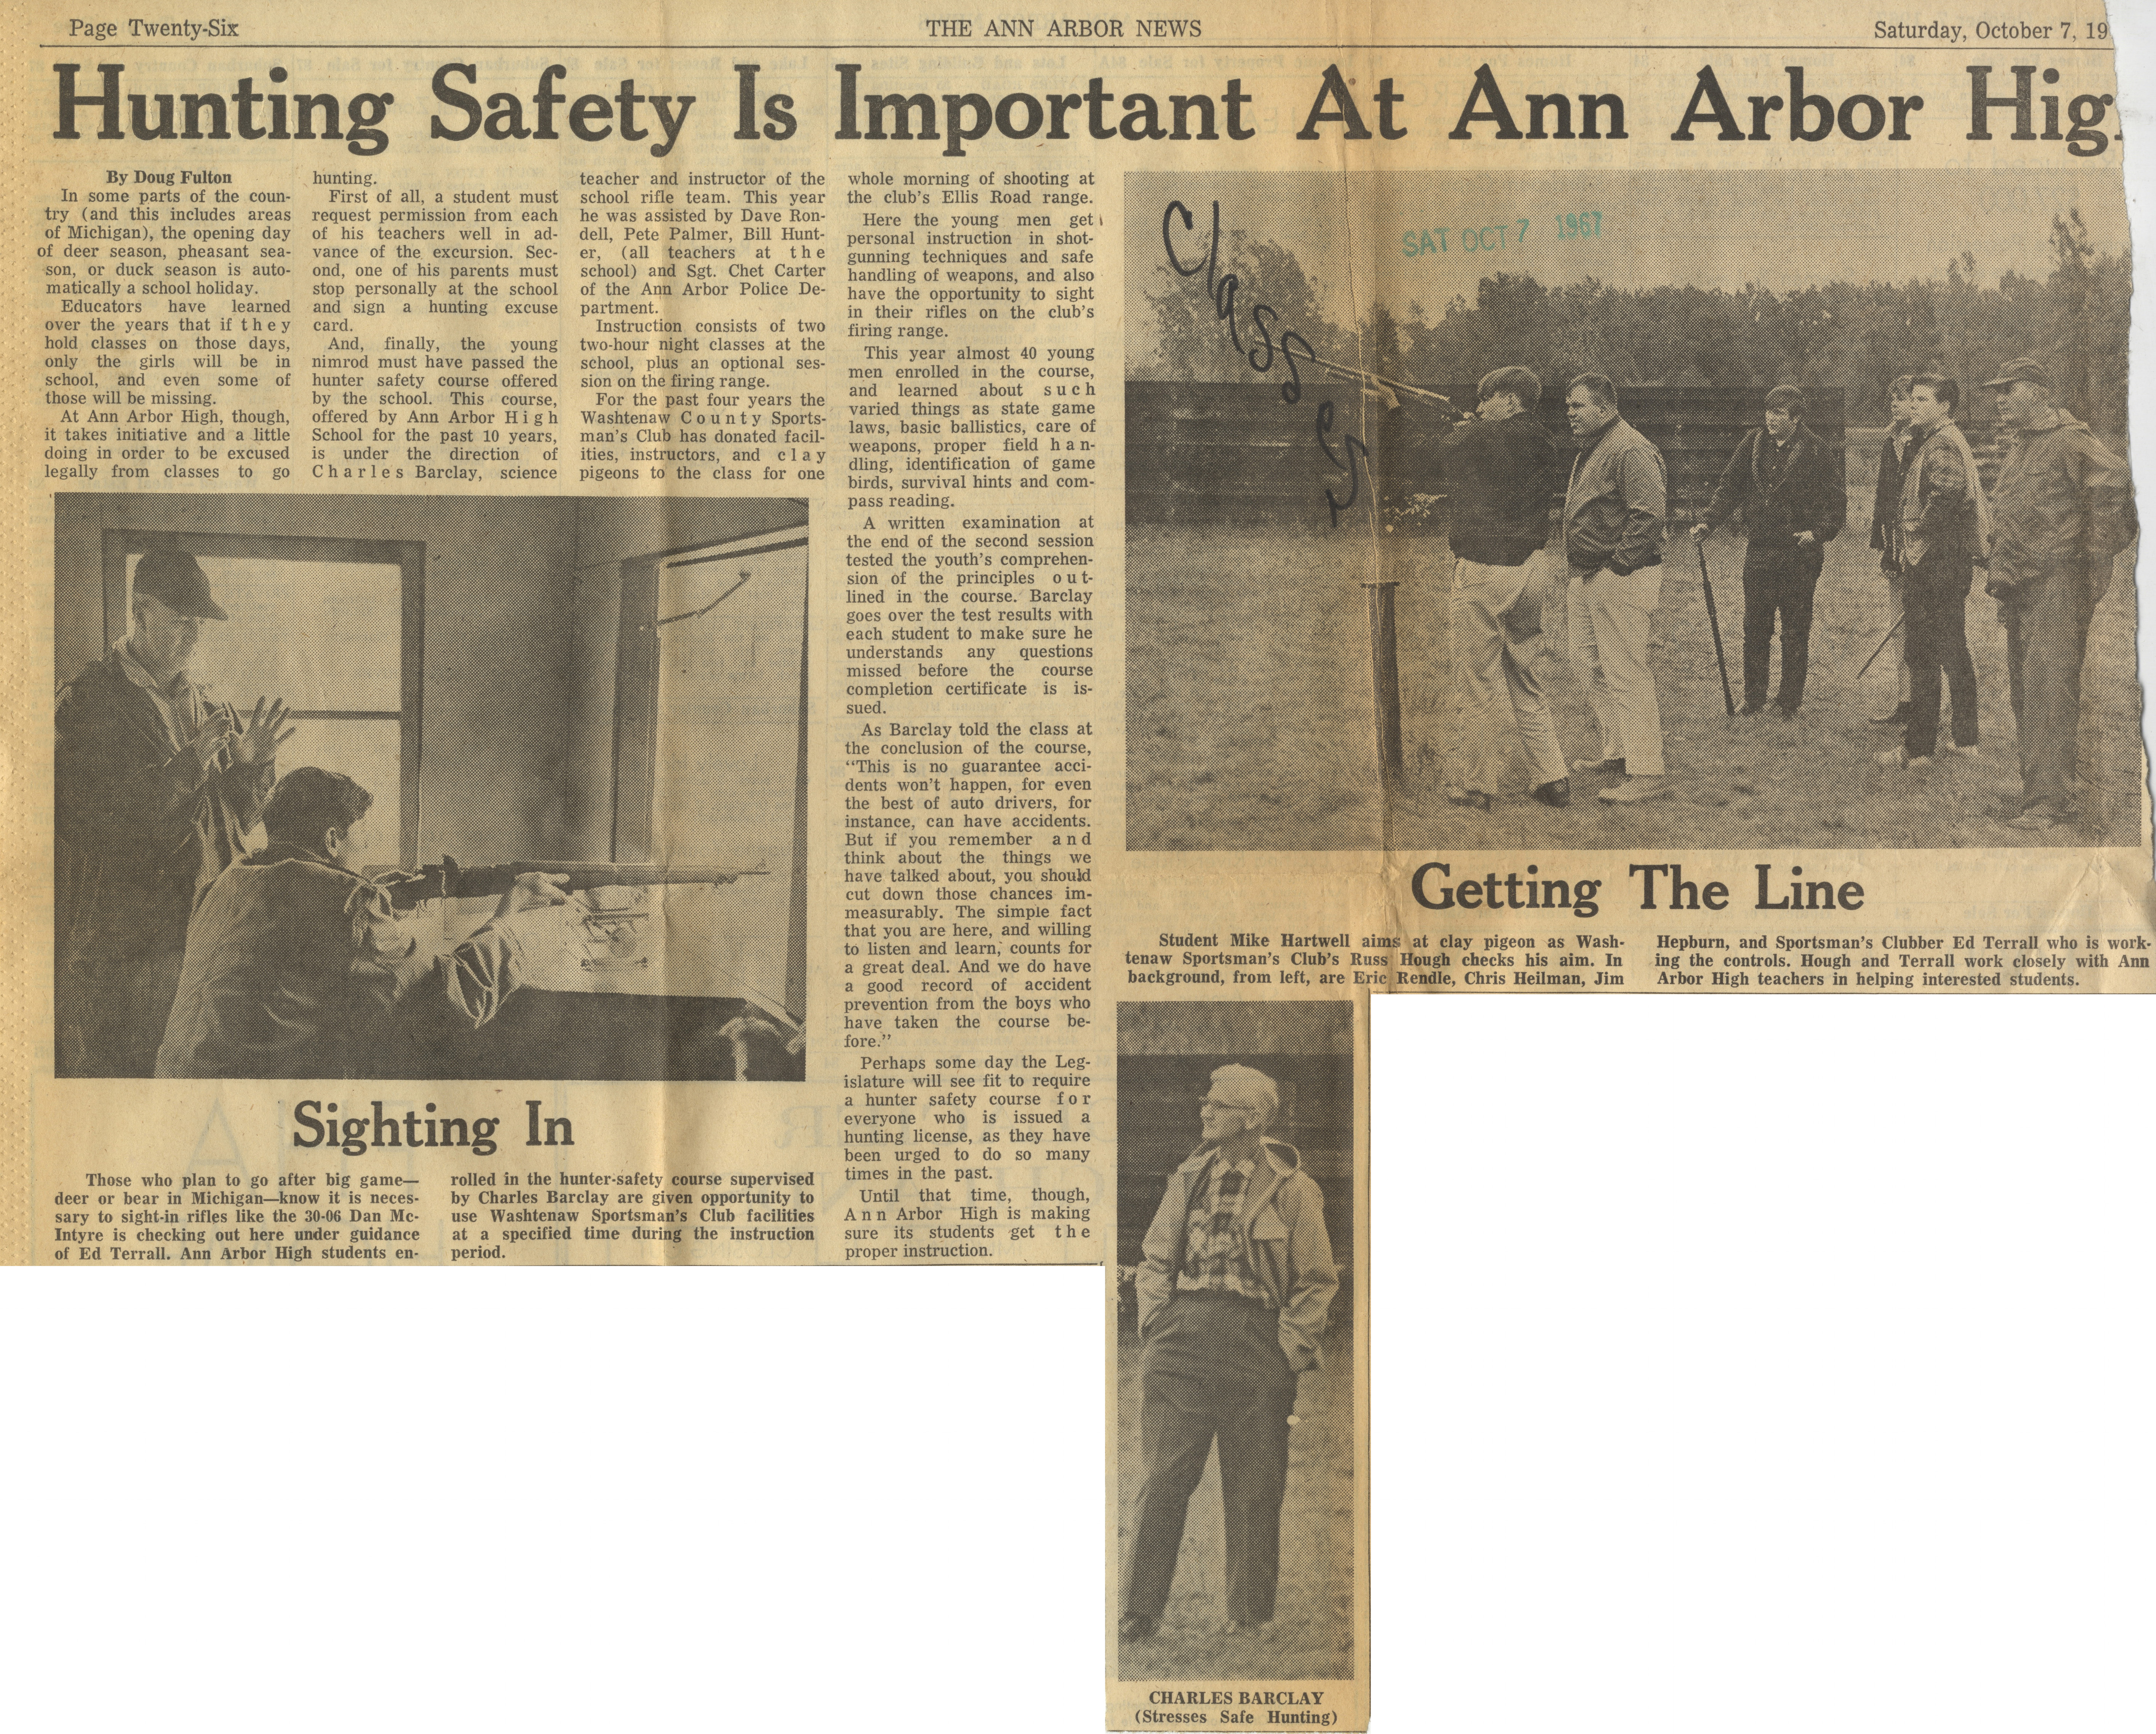 Hunting Safety Is Important At Ann Arbor High image